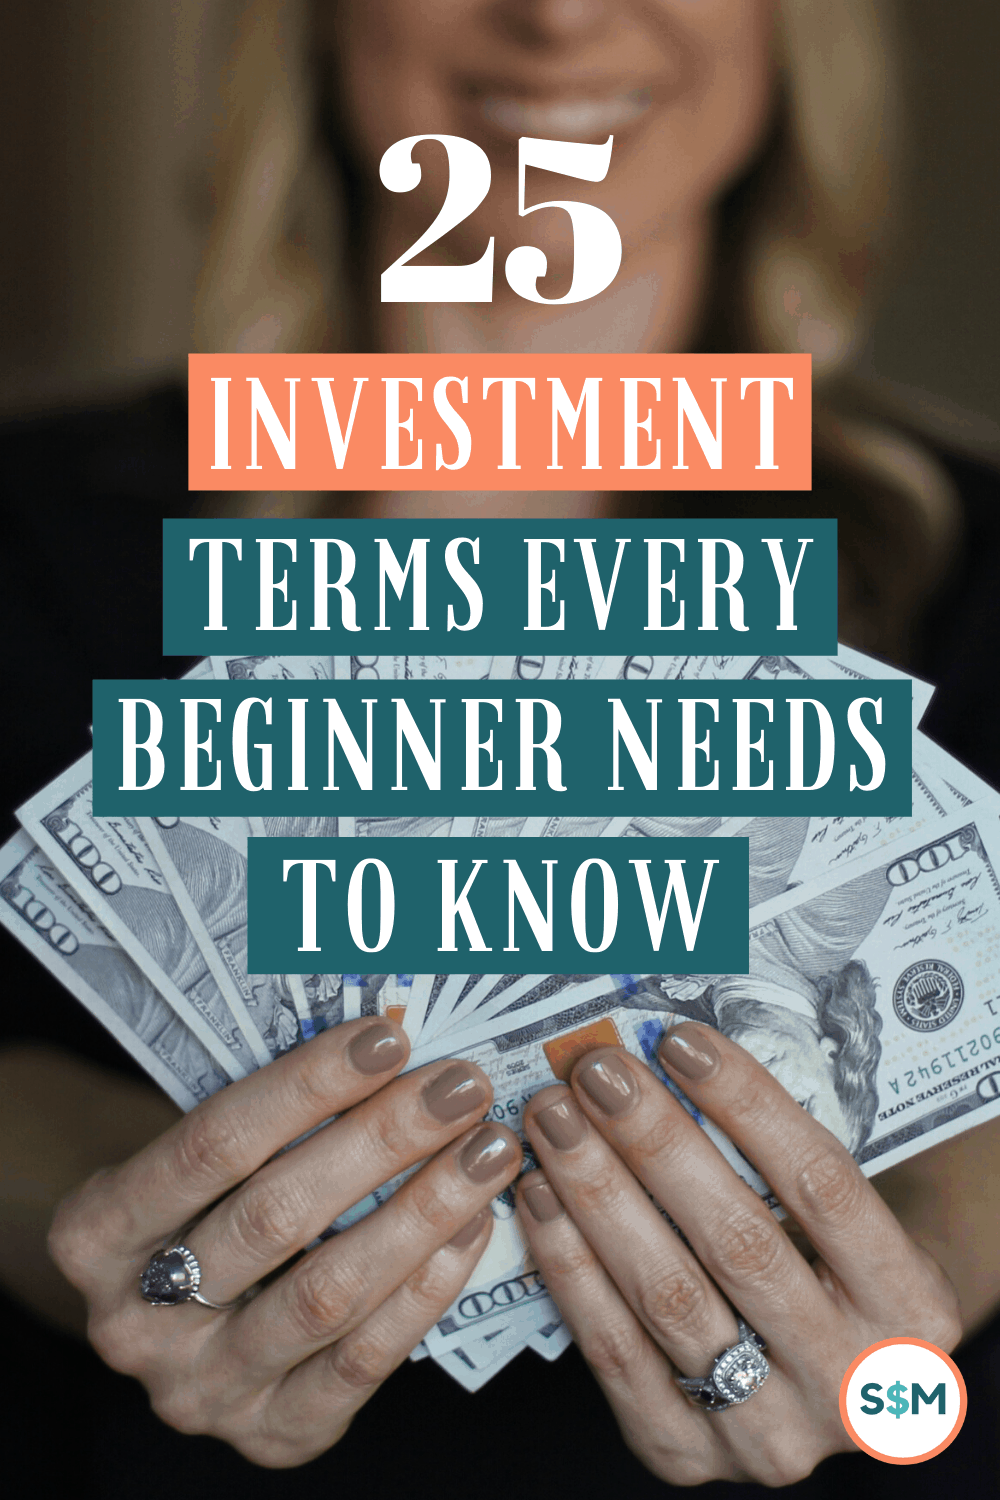 Key Investment Terms Every Beginner Needs to Know